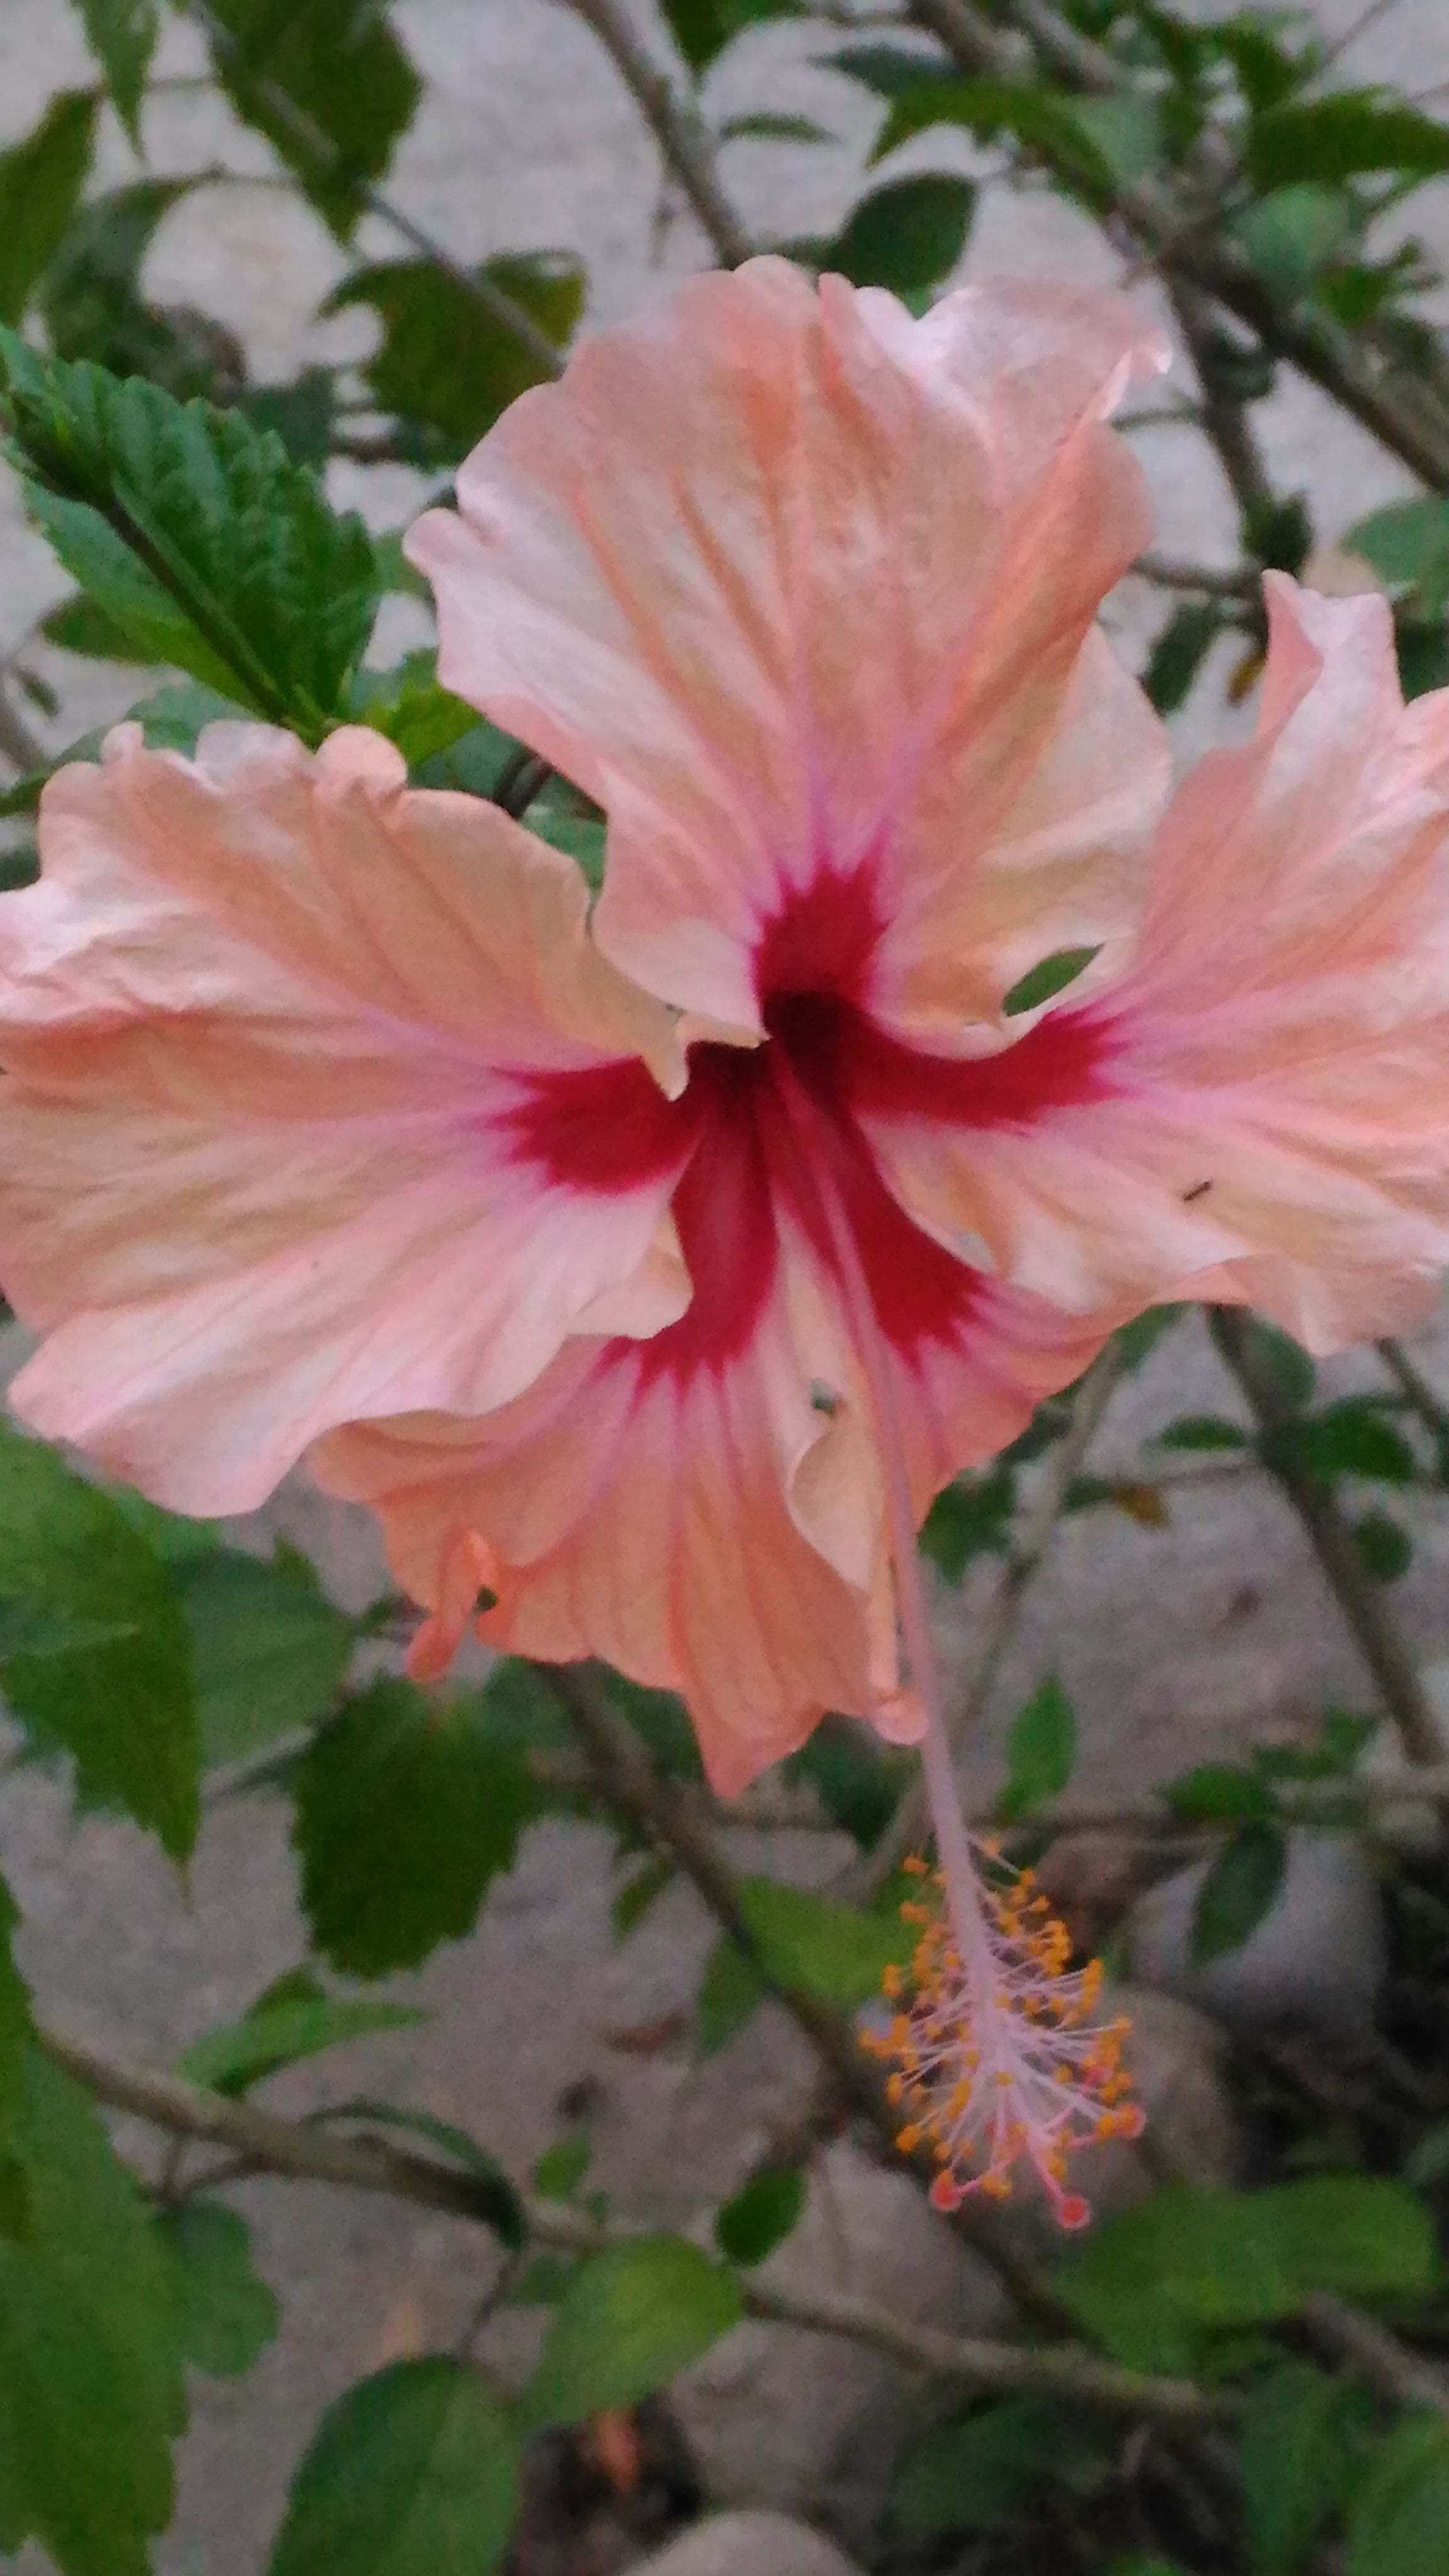 Hibiscus Flowers In Our Yard Moving To Costa Rica Jungle Life Hibiscus Flowers